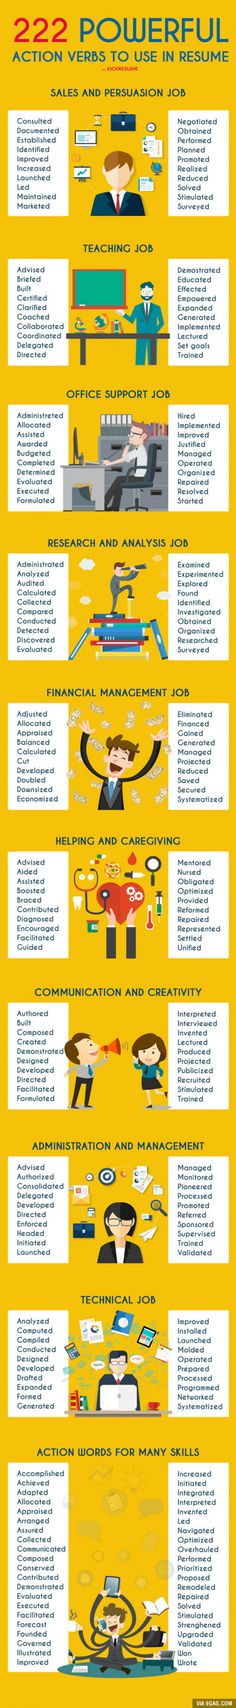 222 Powerful Action Verbs to Use in Your Resume TFE Times Job - action verbs